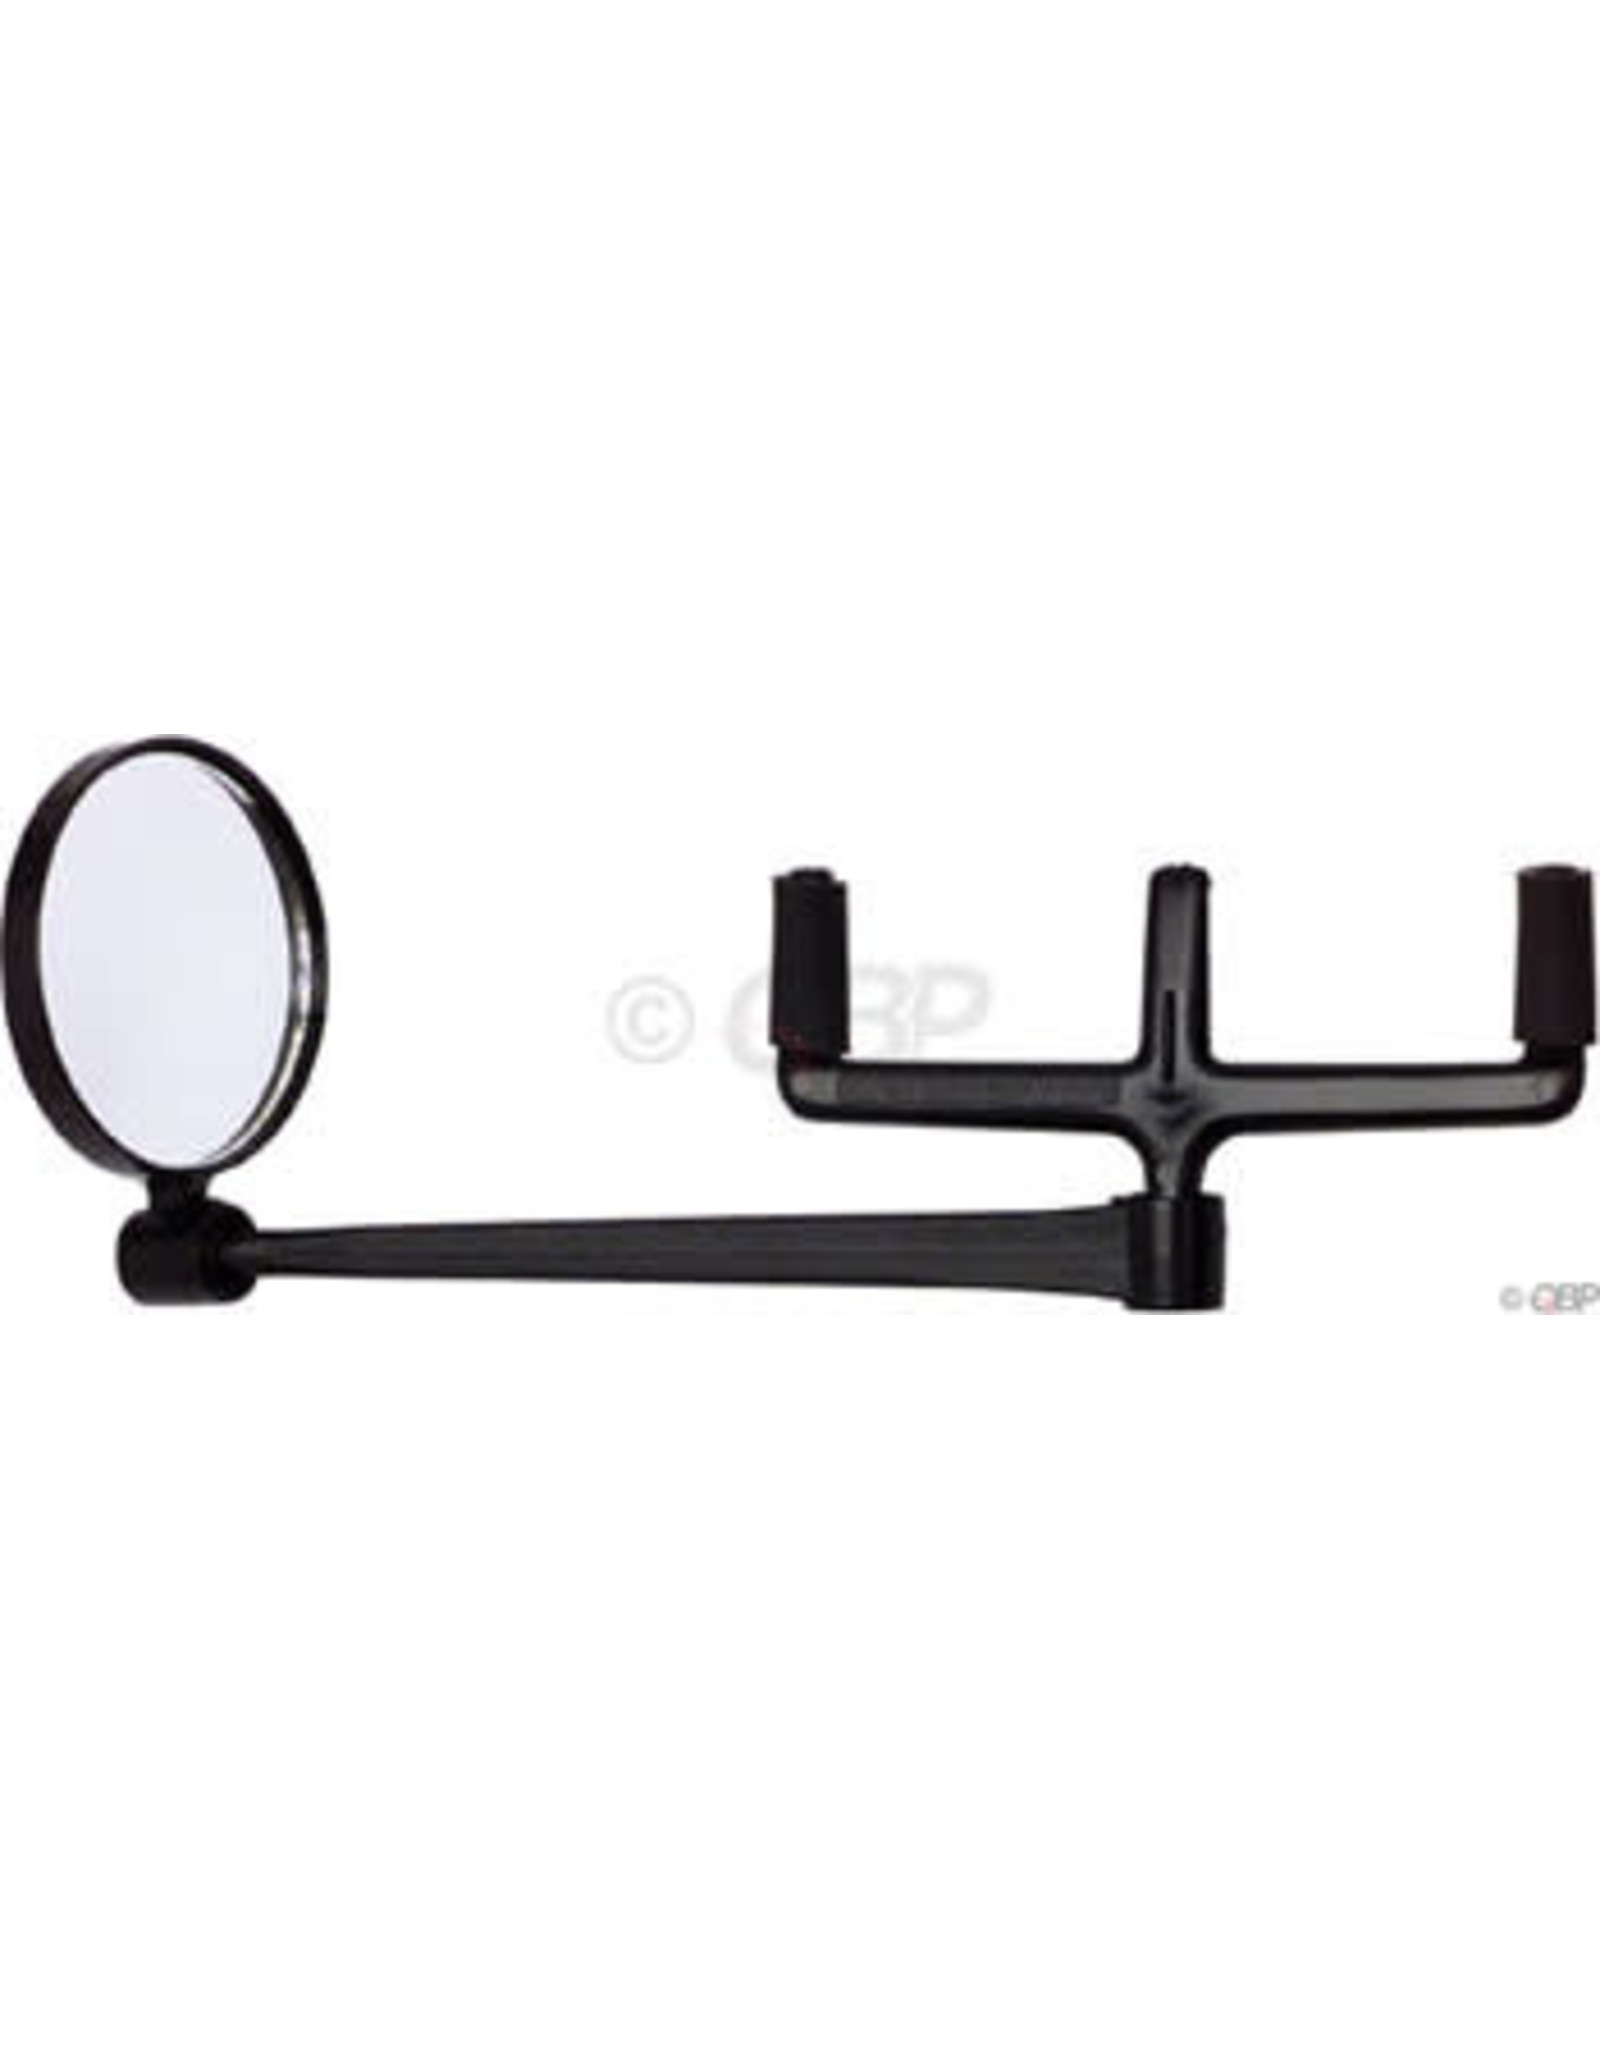 3rd Eye 3rd Eye Eyeglass Mirror: Clip on